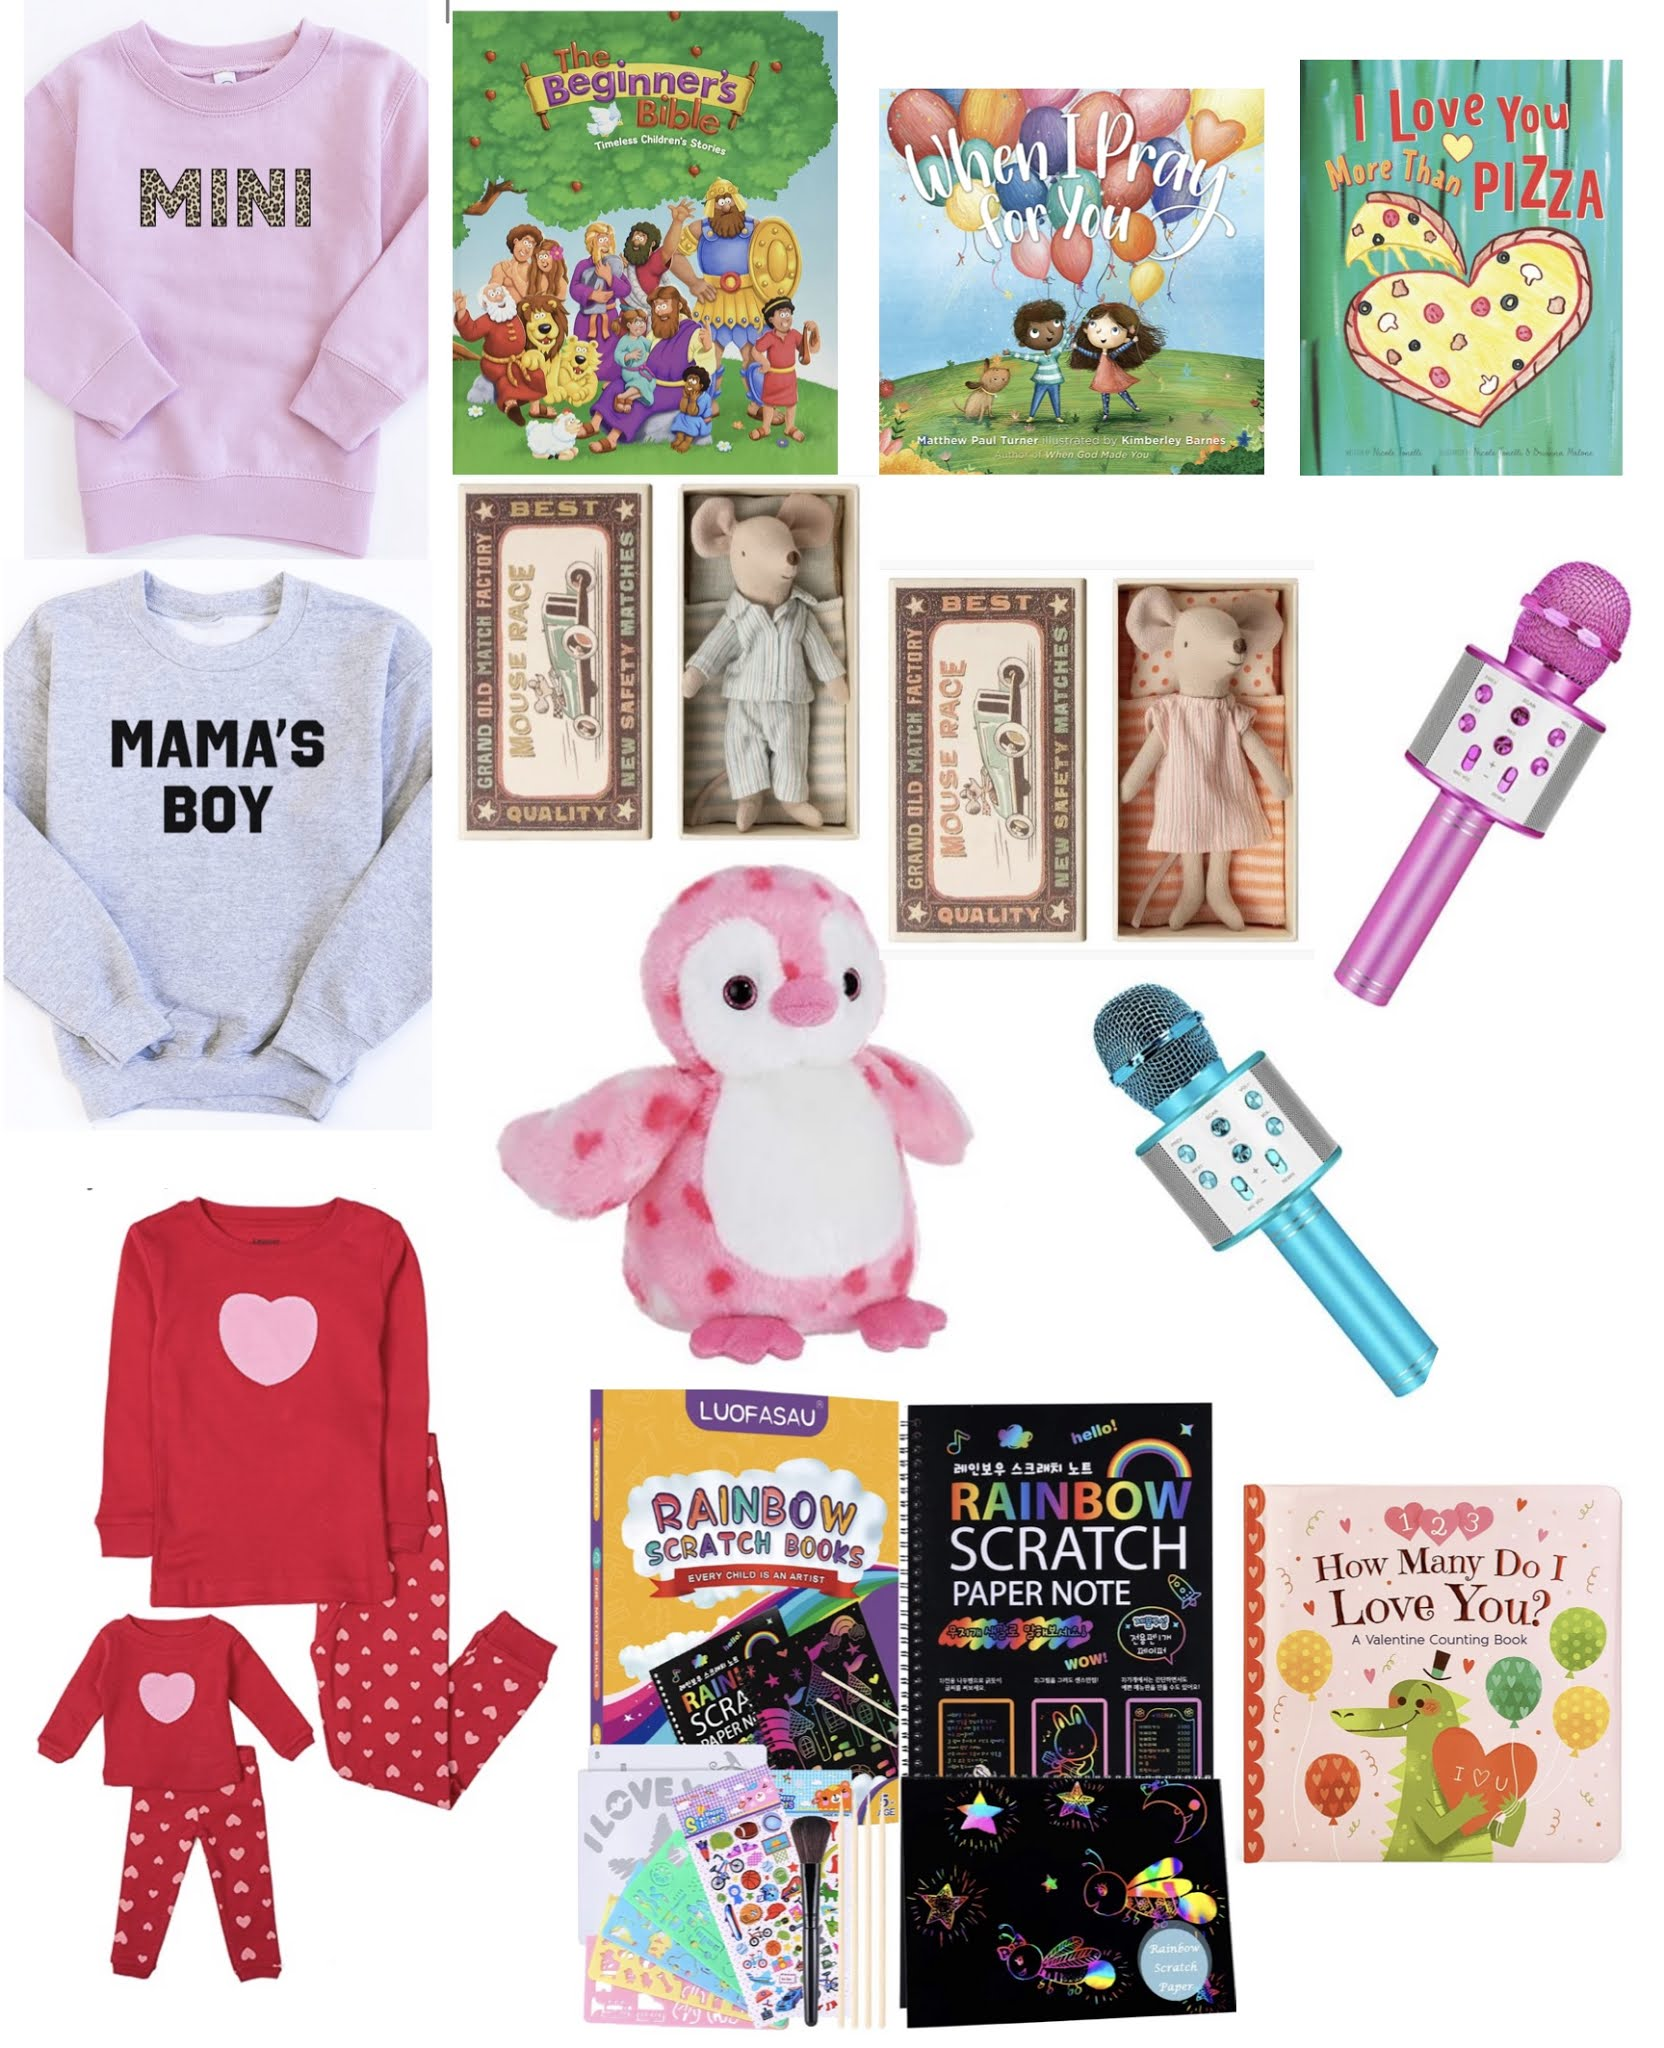 Valentine Gift Ideas for Kids - Something Delightful Blog #GiftIdeas #GiftsForKids #ValentineGiftIdeas #KidsValentine